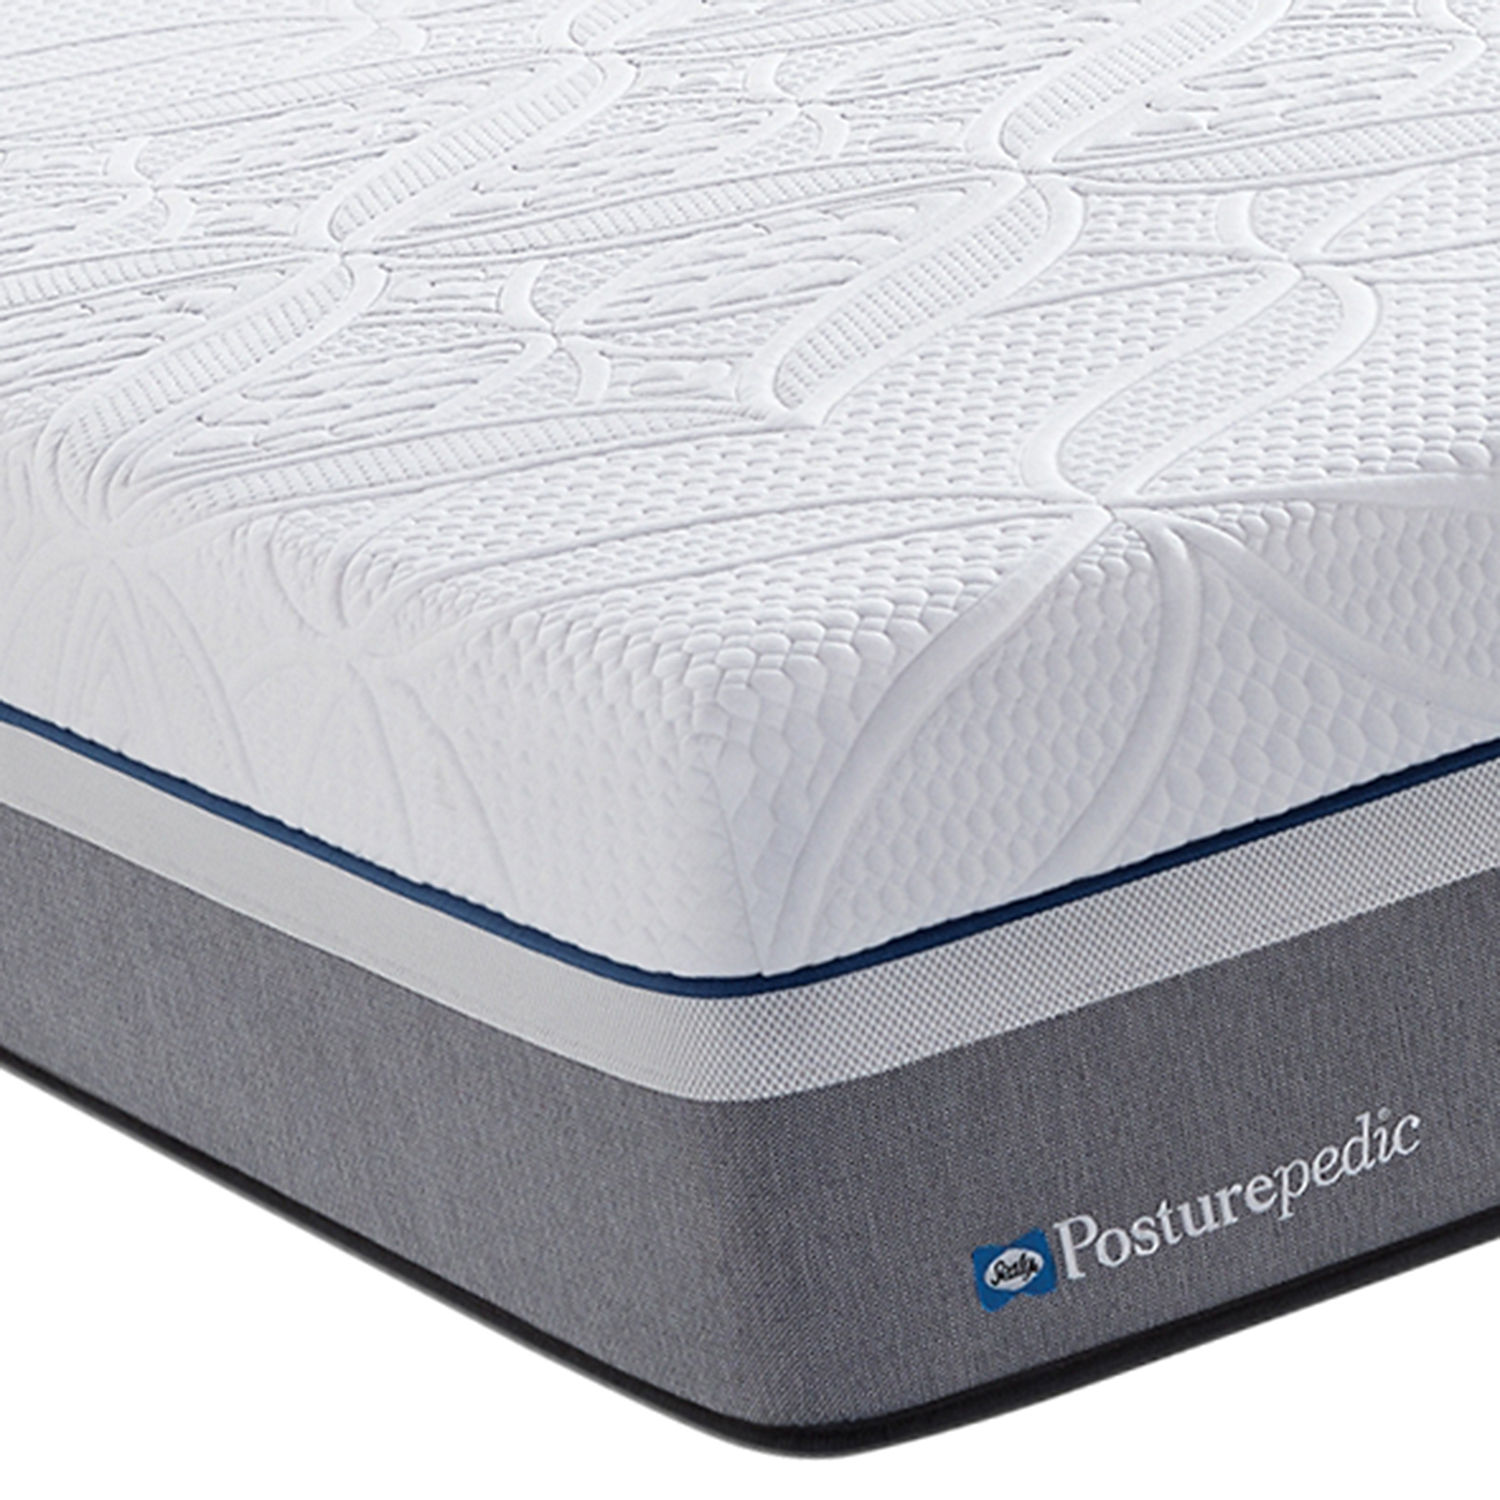 Sealy Posturepedic Premier Hybrid Series Copper Mattress Reviews Goodbed